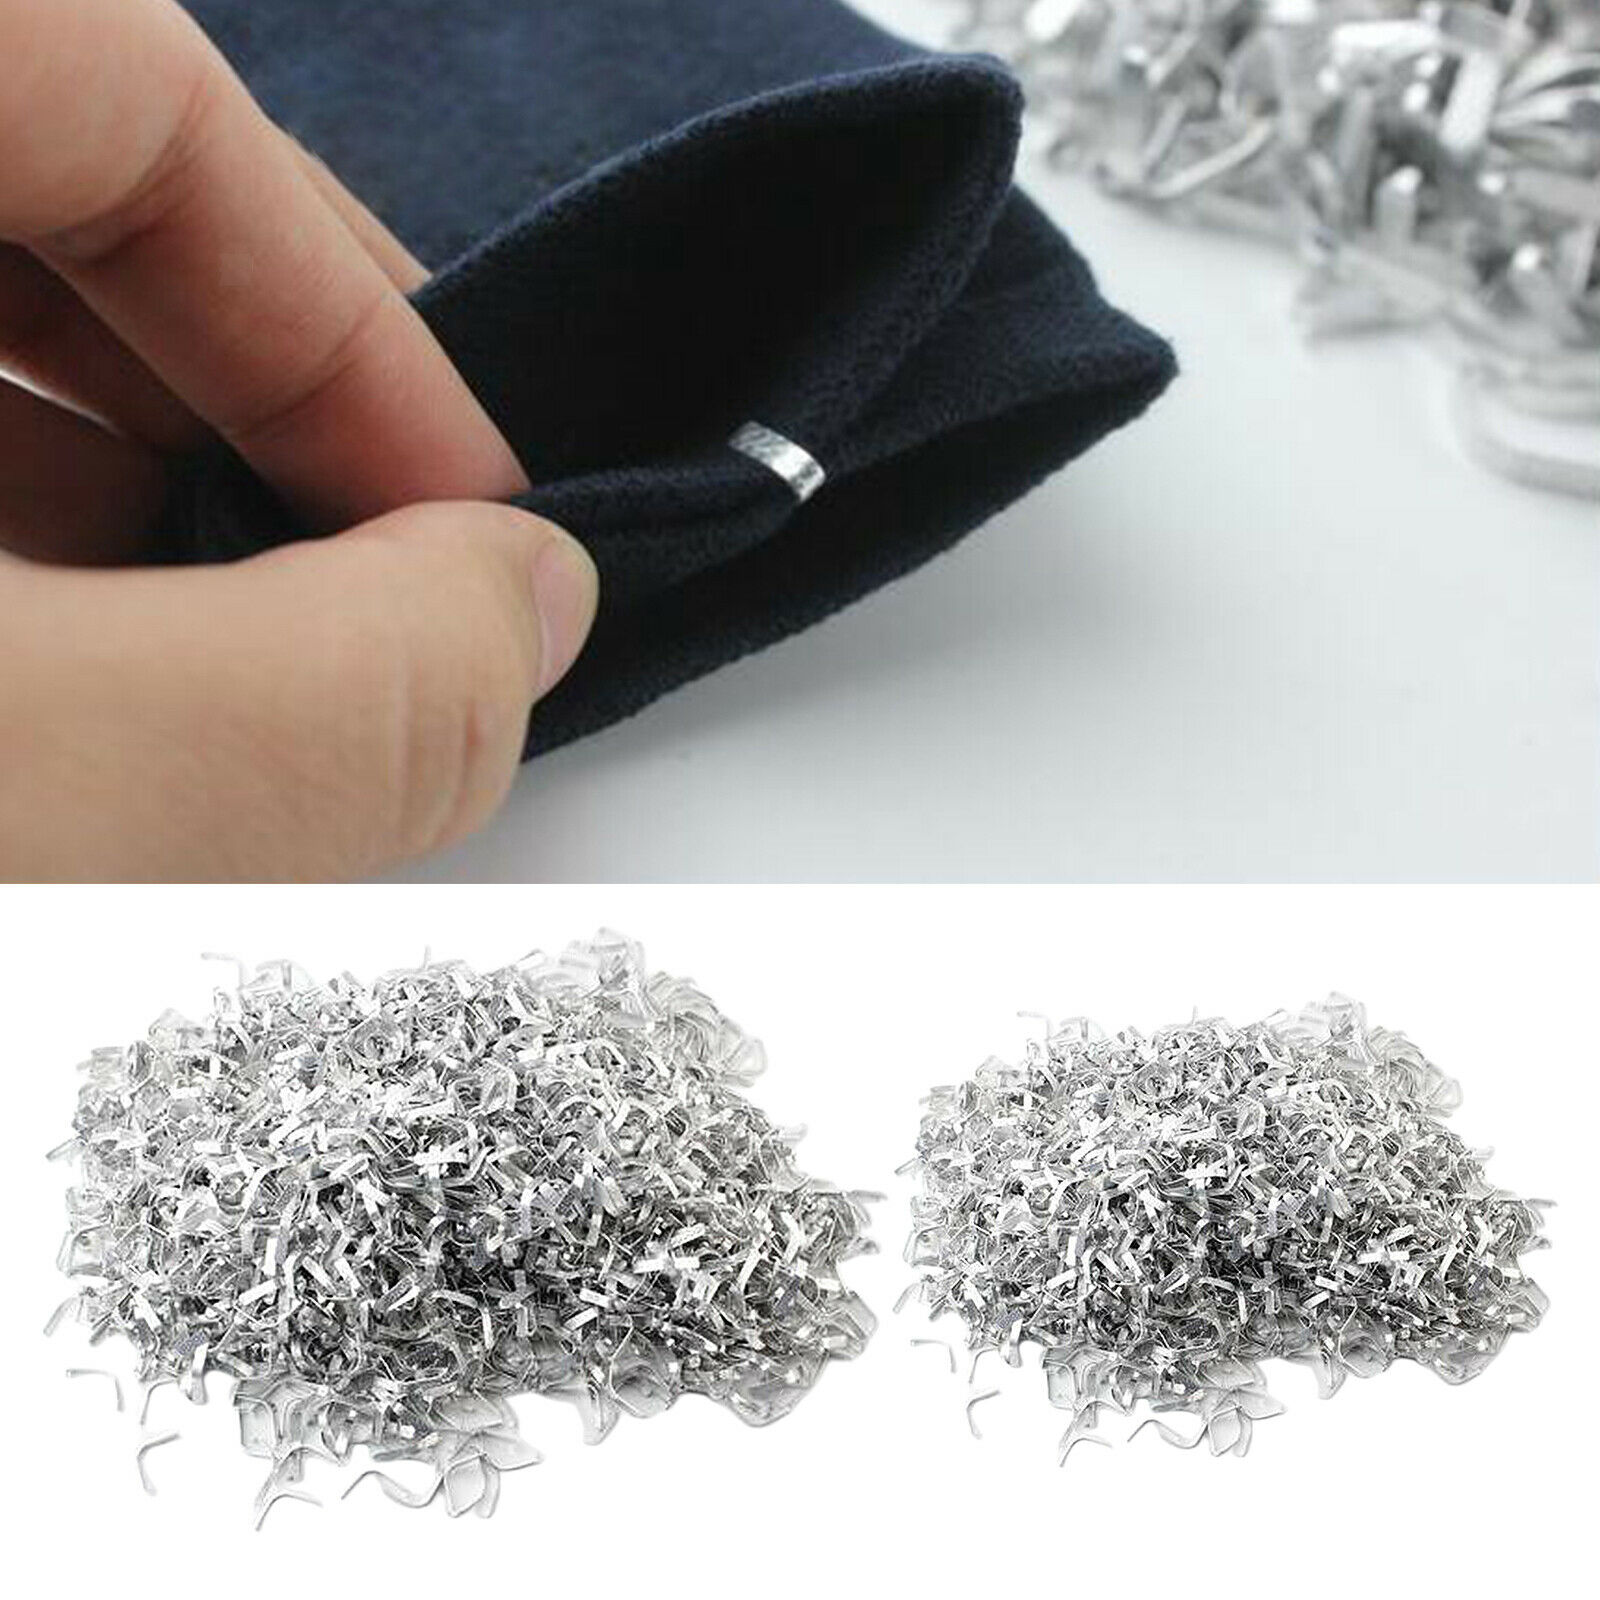 10000Pcs Socks Packing Clip Clamp Sock Snaps Holder Hosiery Accessories